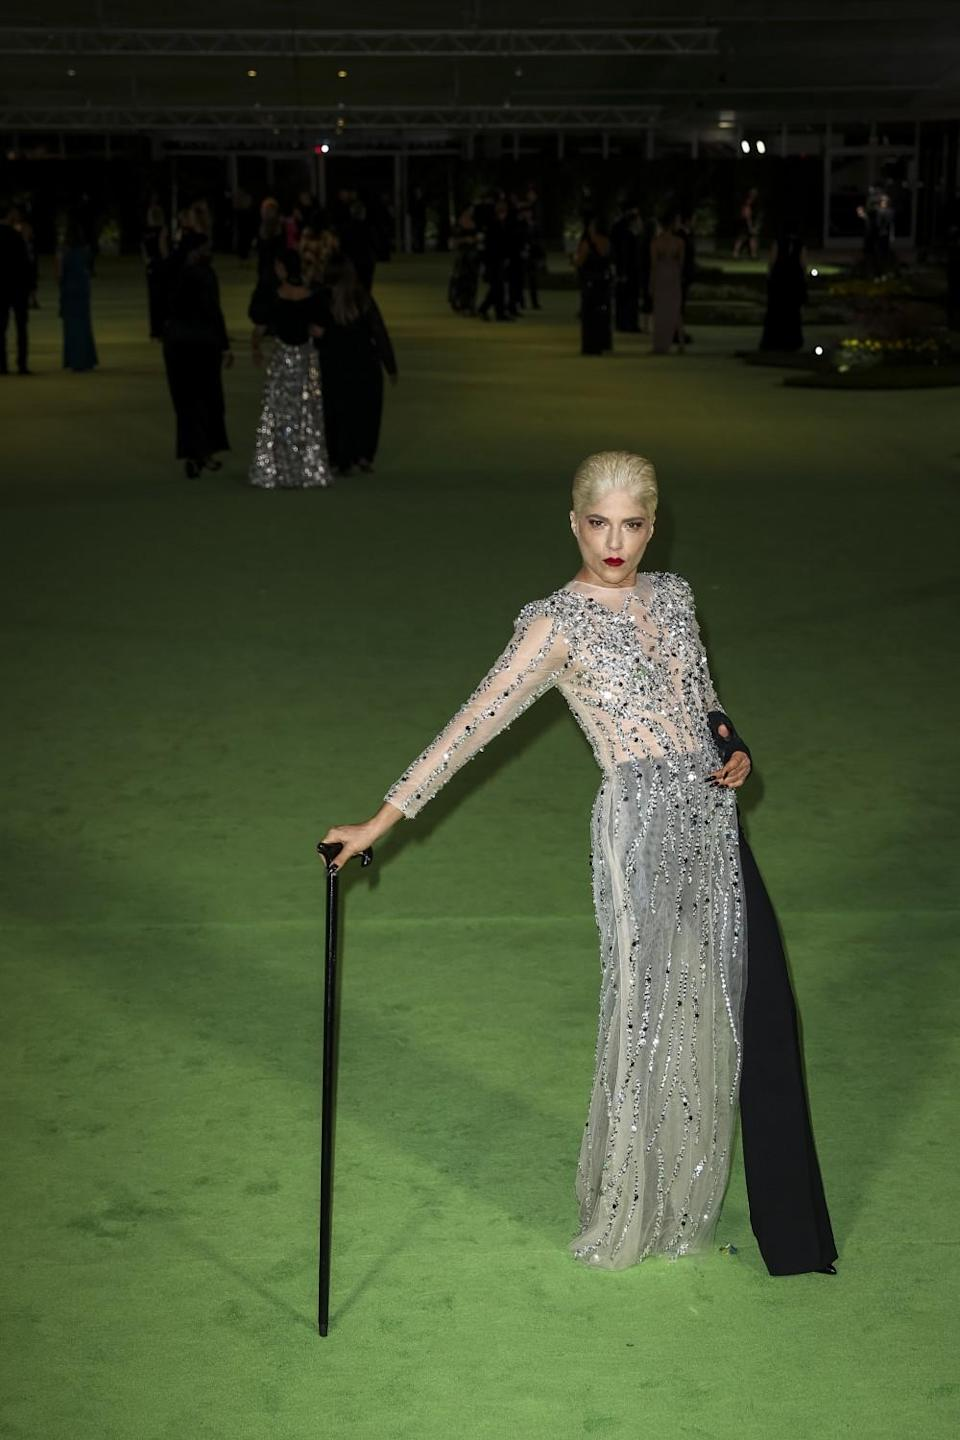 A woman in a silver dress and black pants posing with a cane on a green carpet